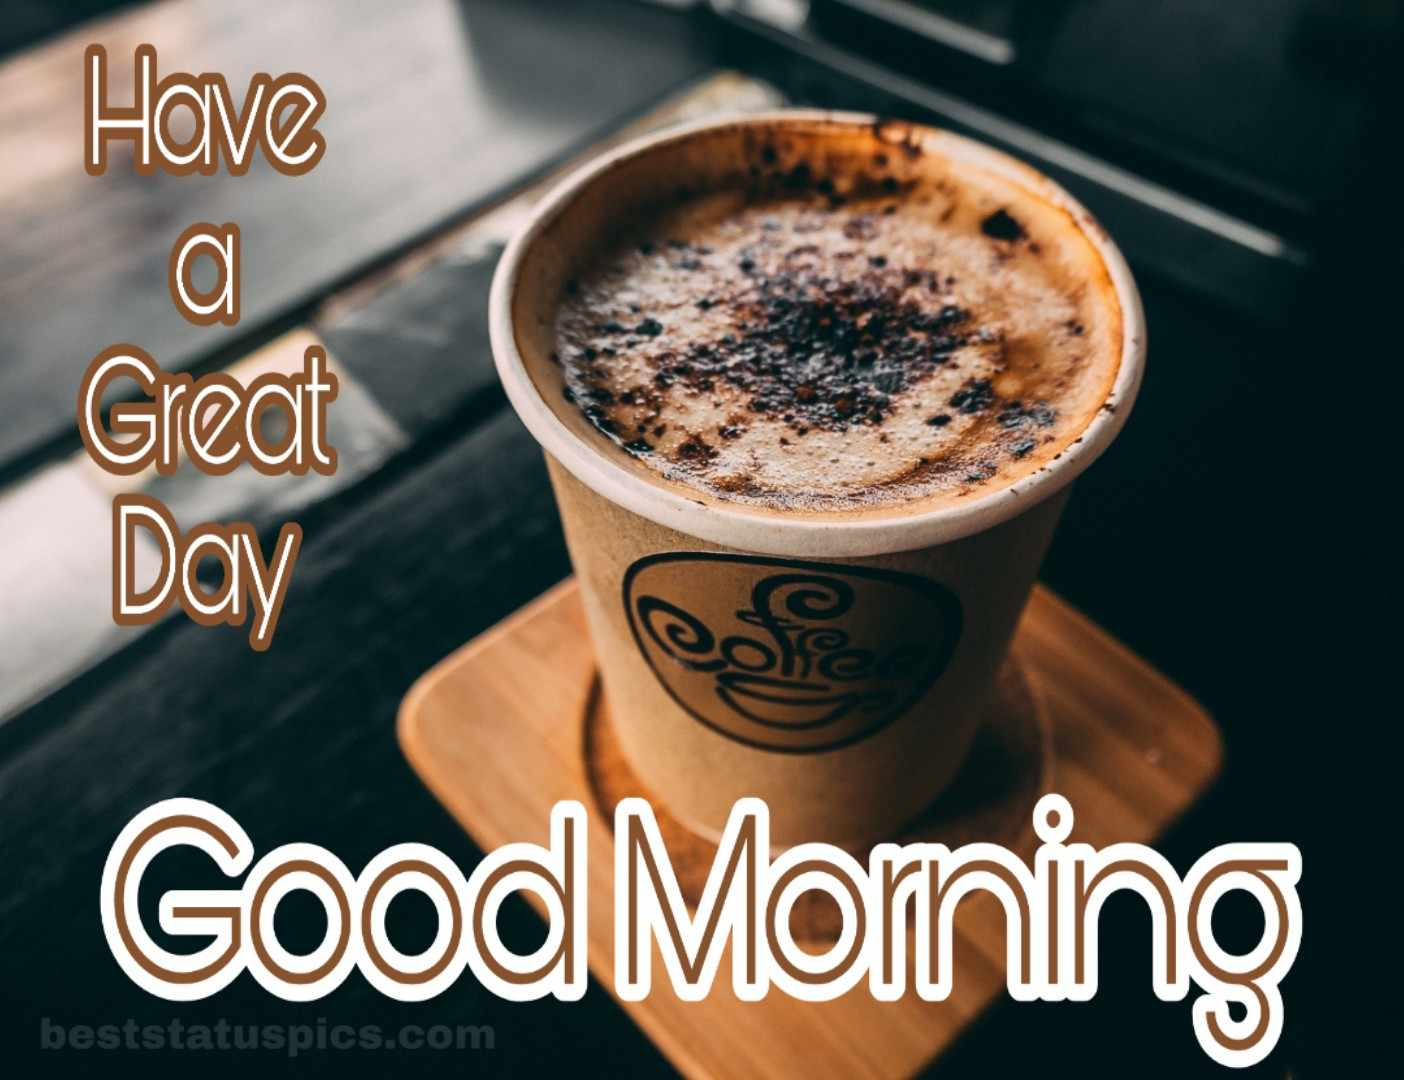 Coffee image with good morning have a great day wish